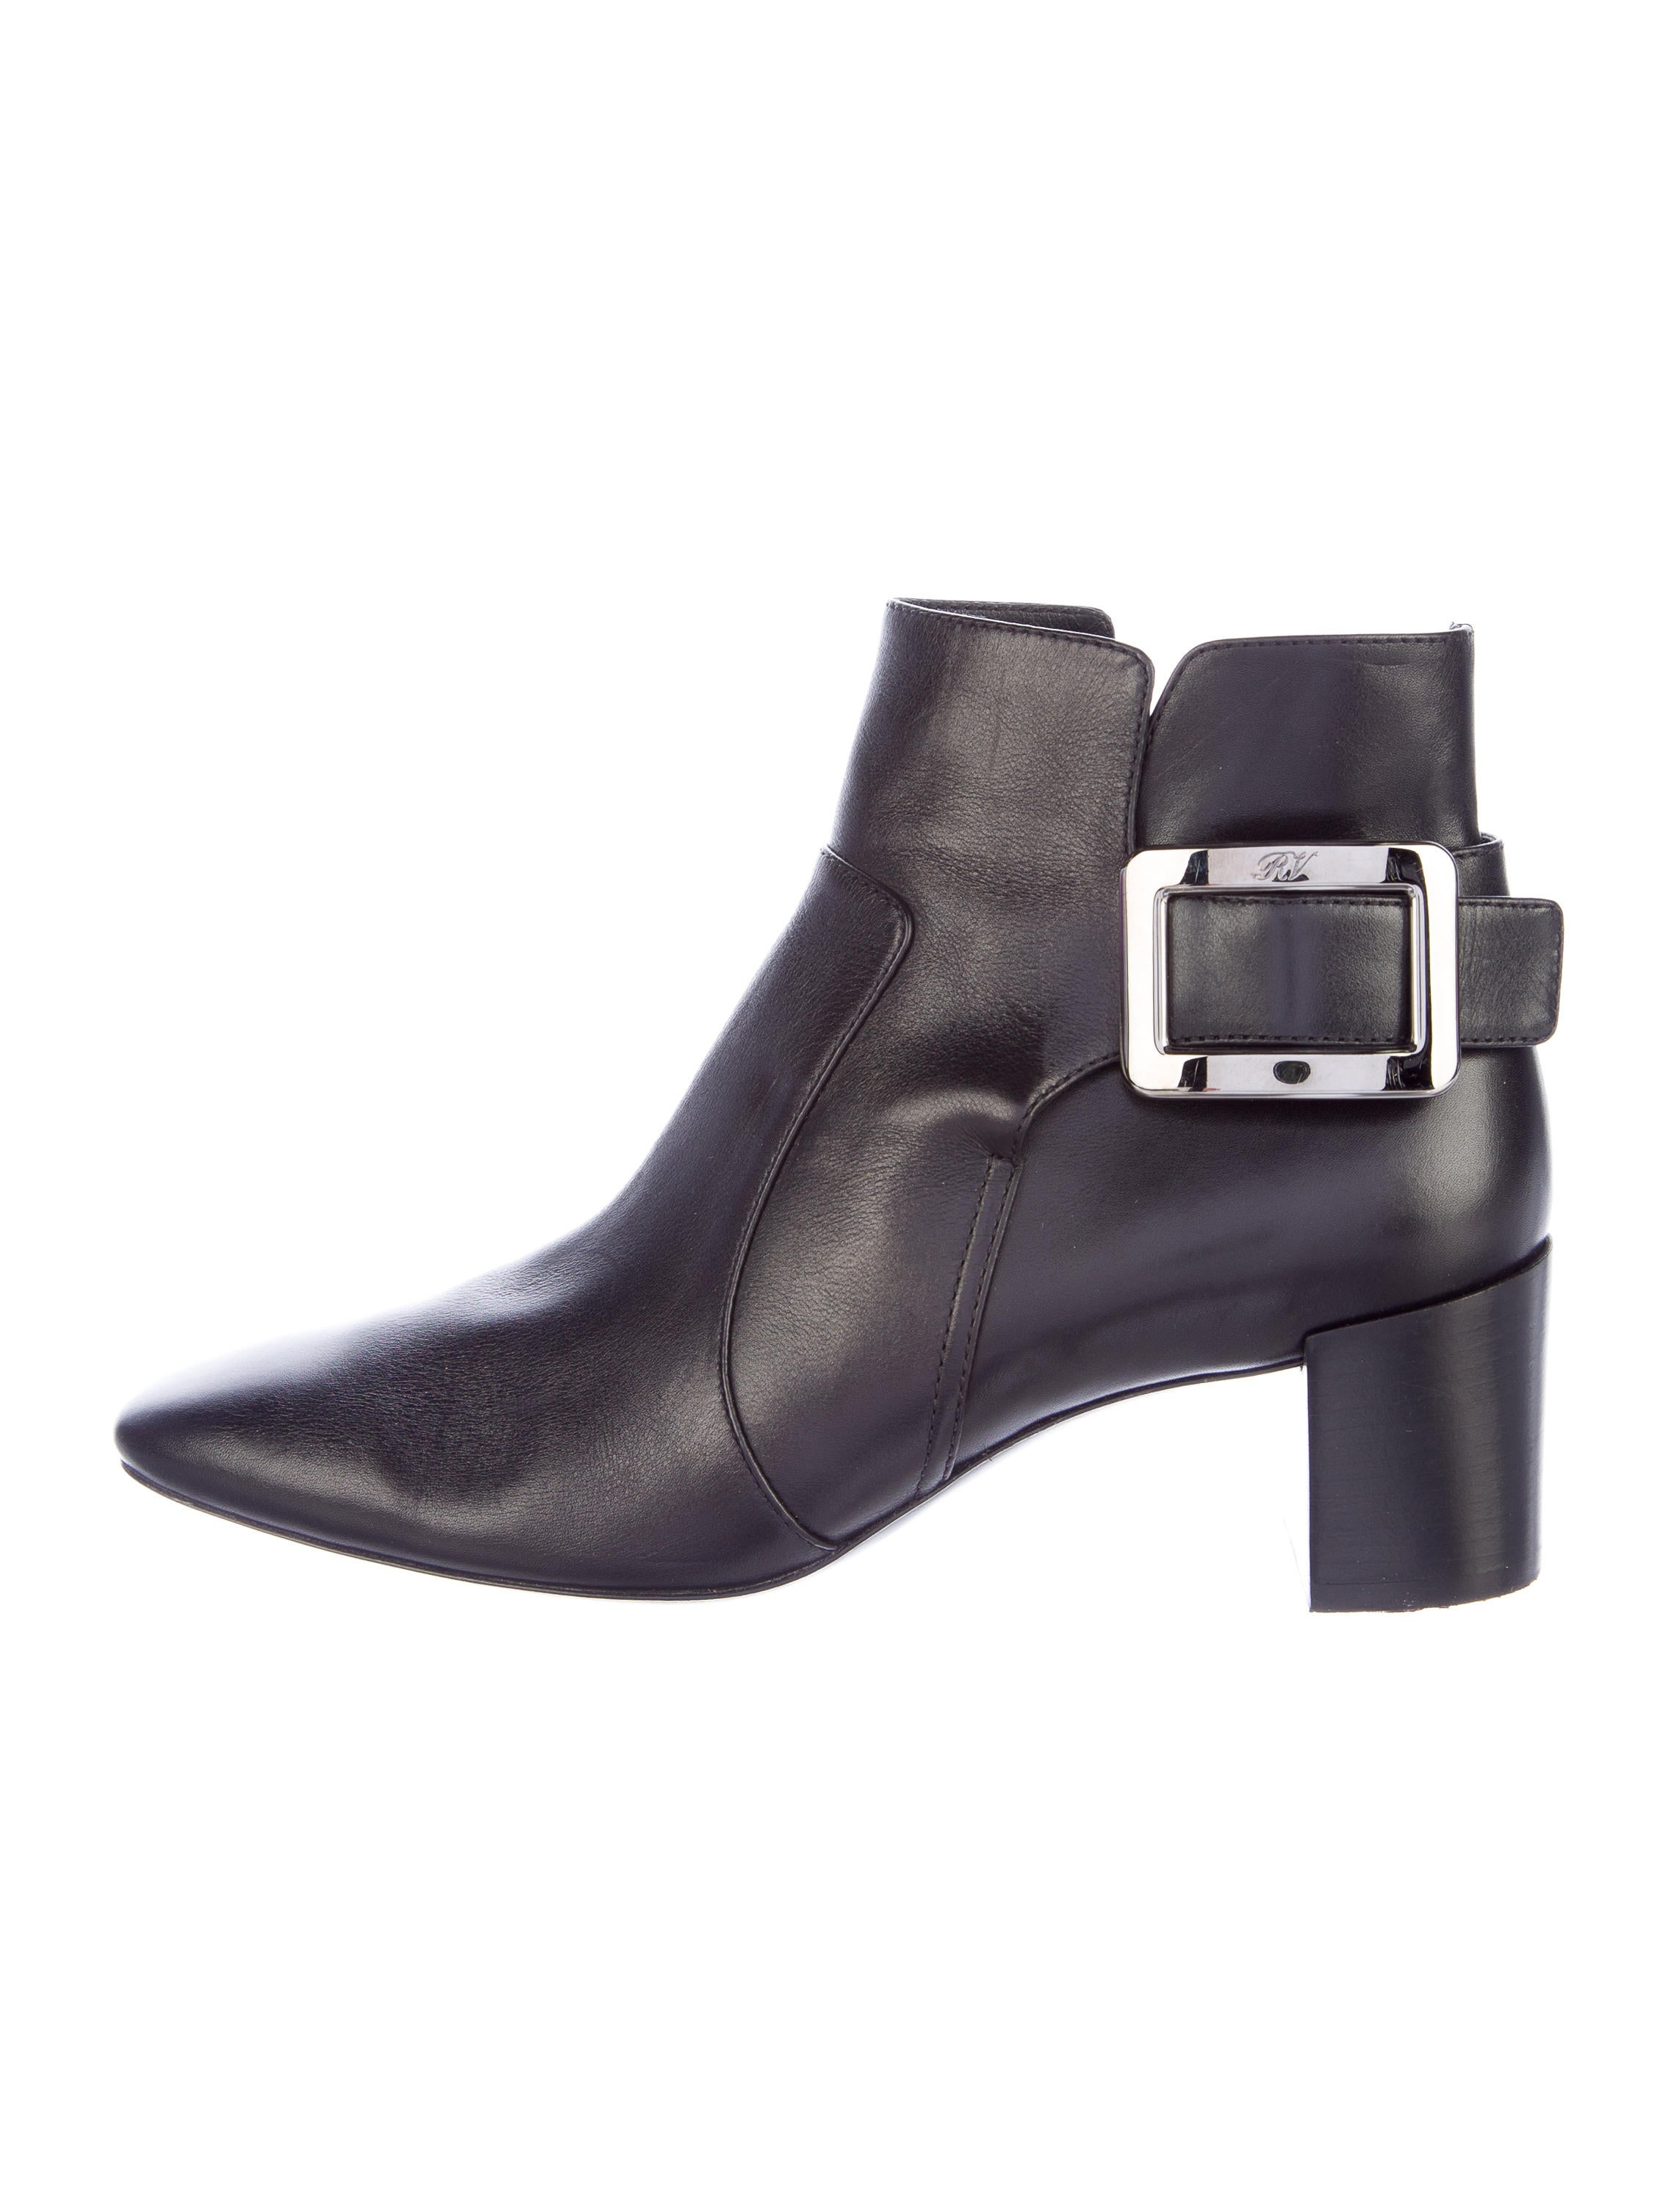 roger vivier buckle leather ankle boots shoes rov24411